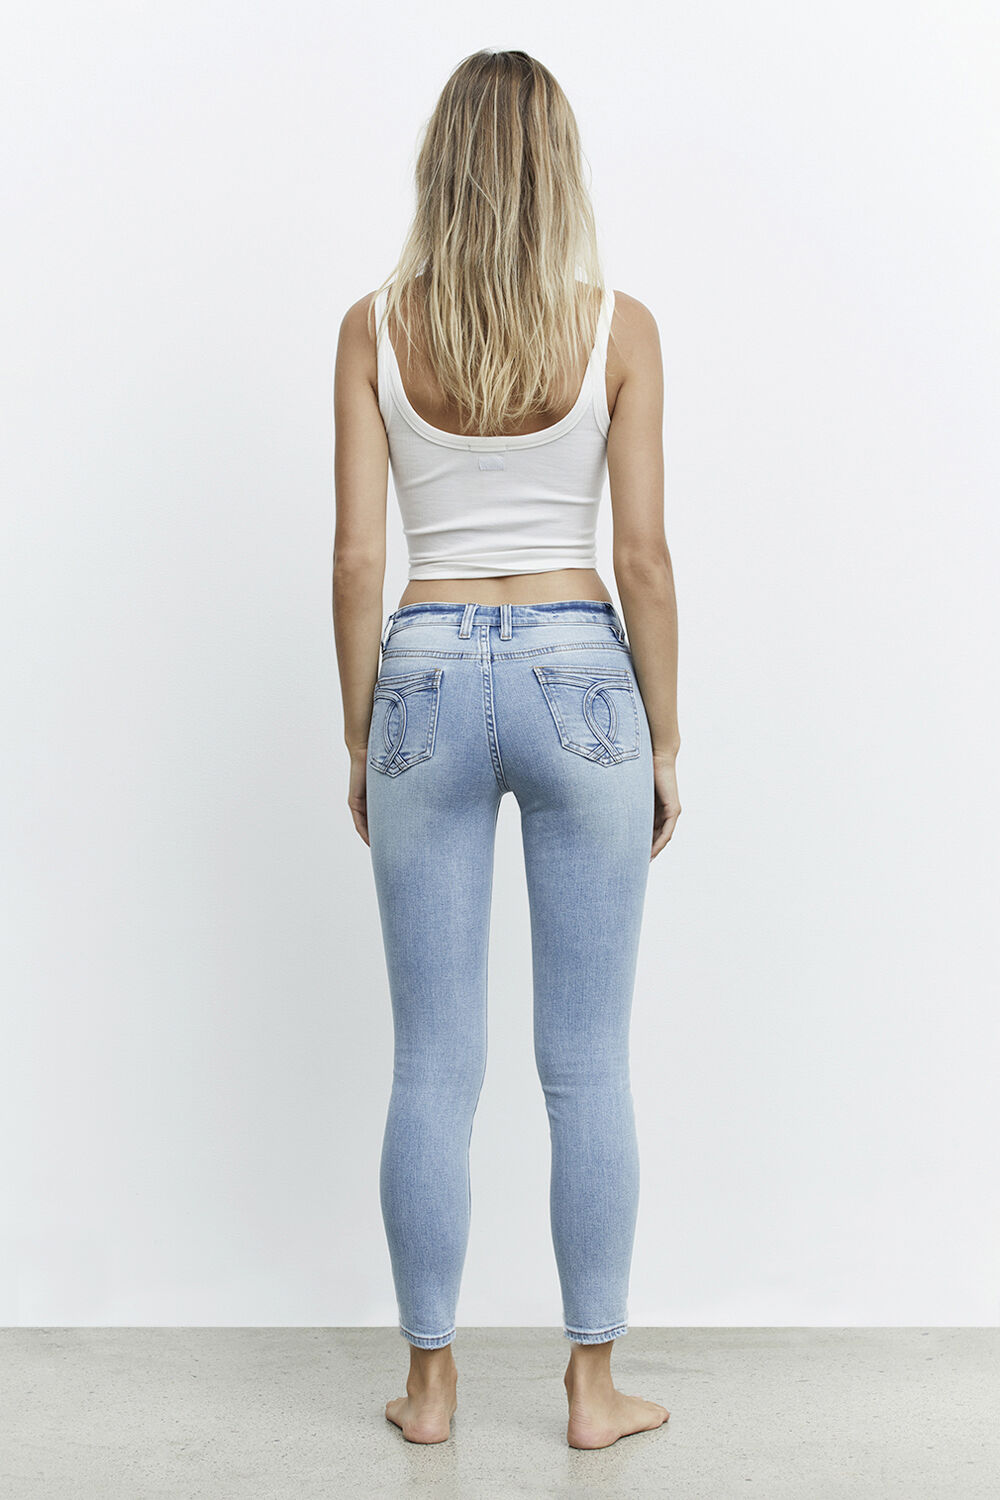 KATE LOW RISE JEAN in colour NIGHTSHADOW BLUE